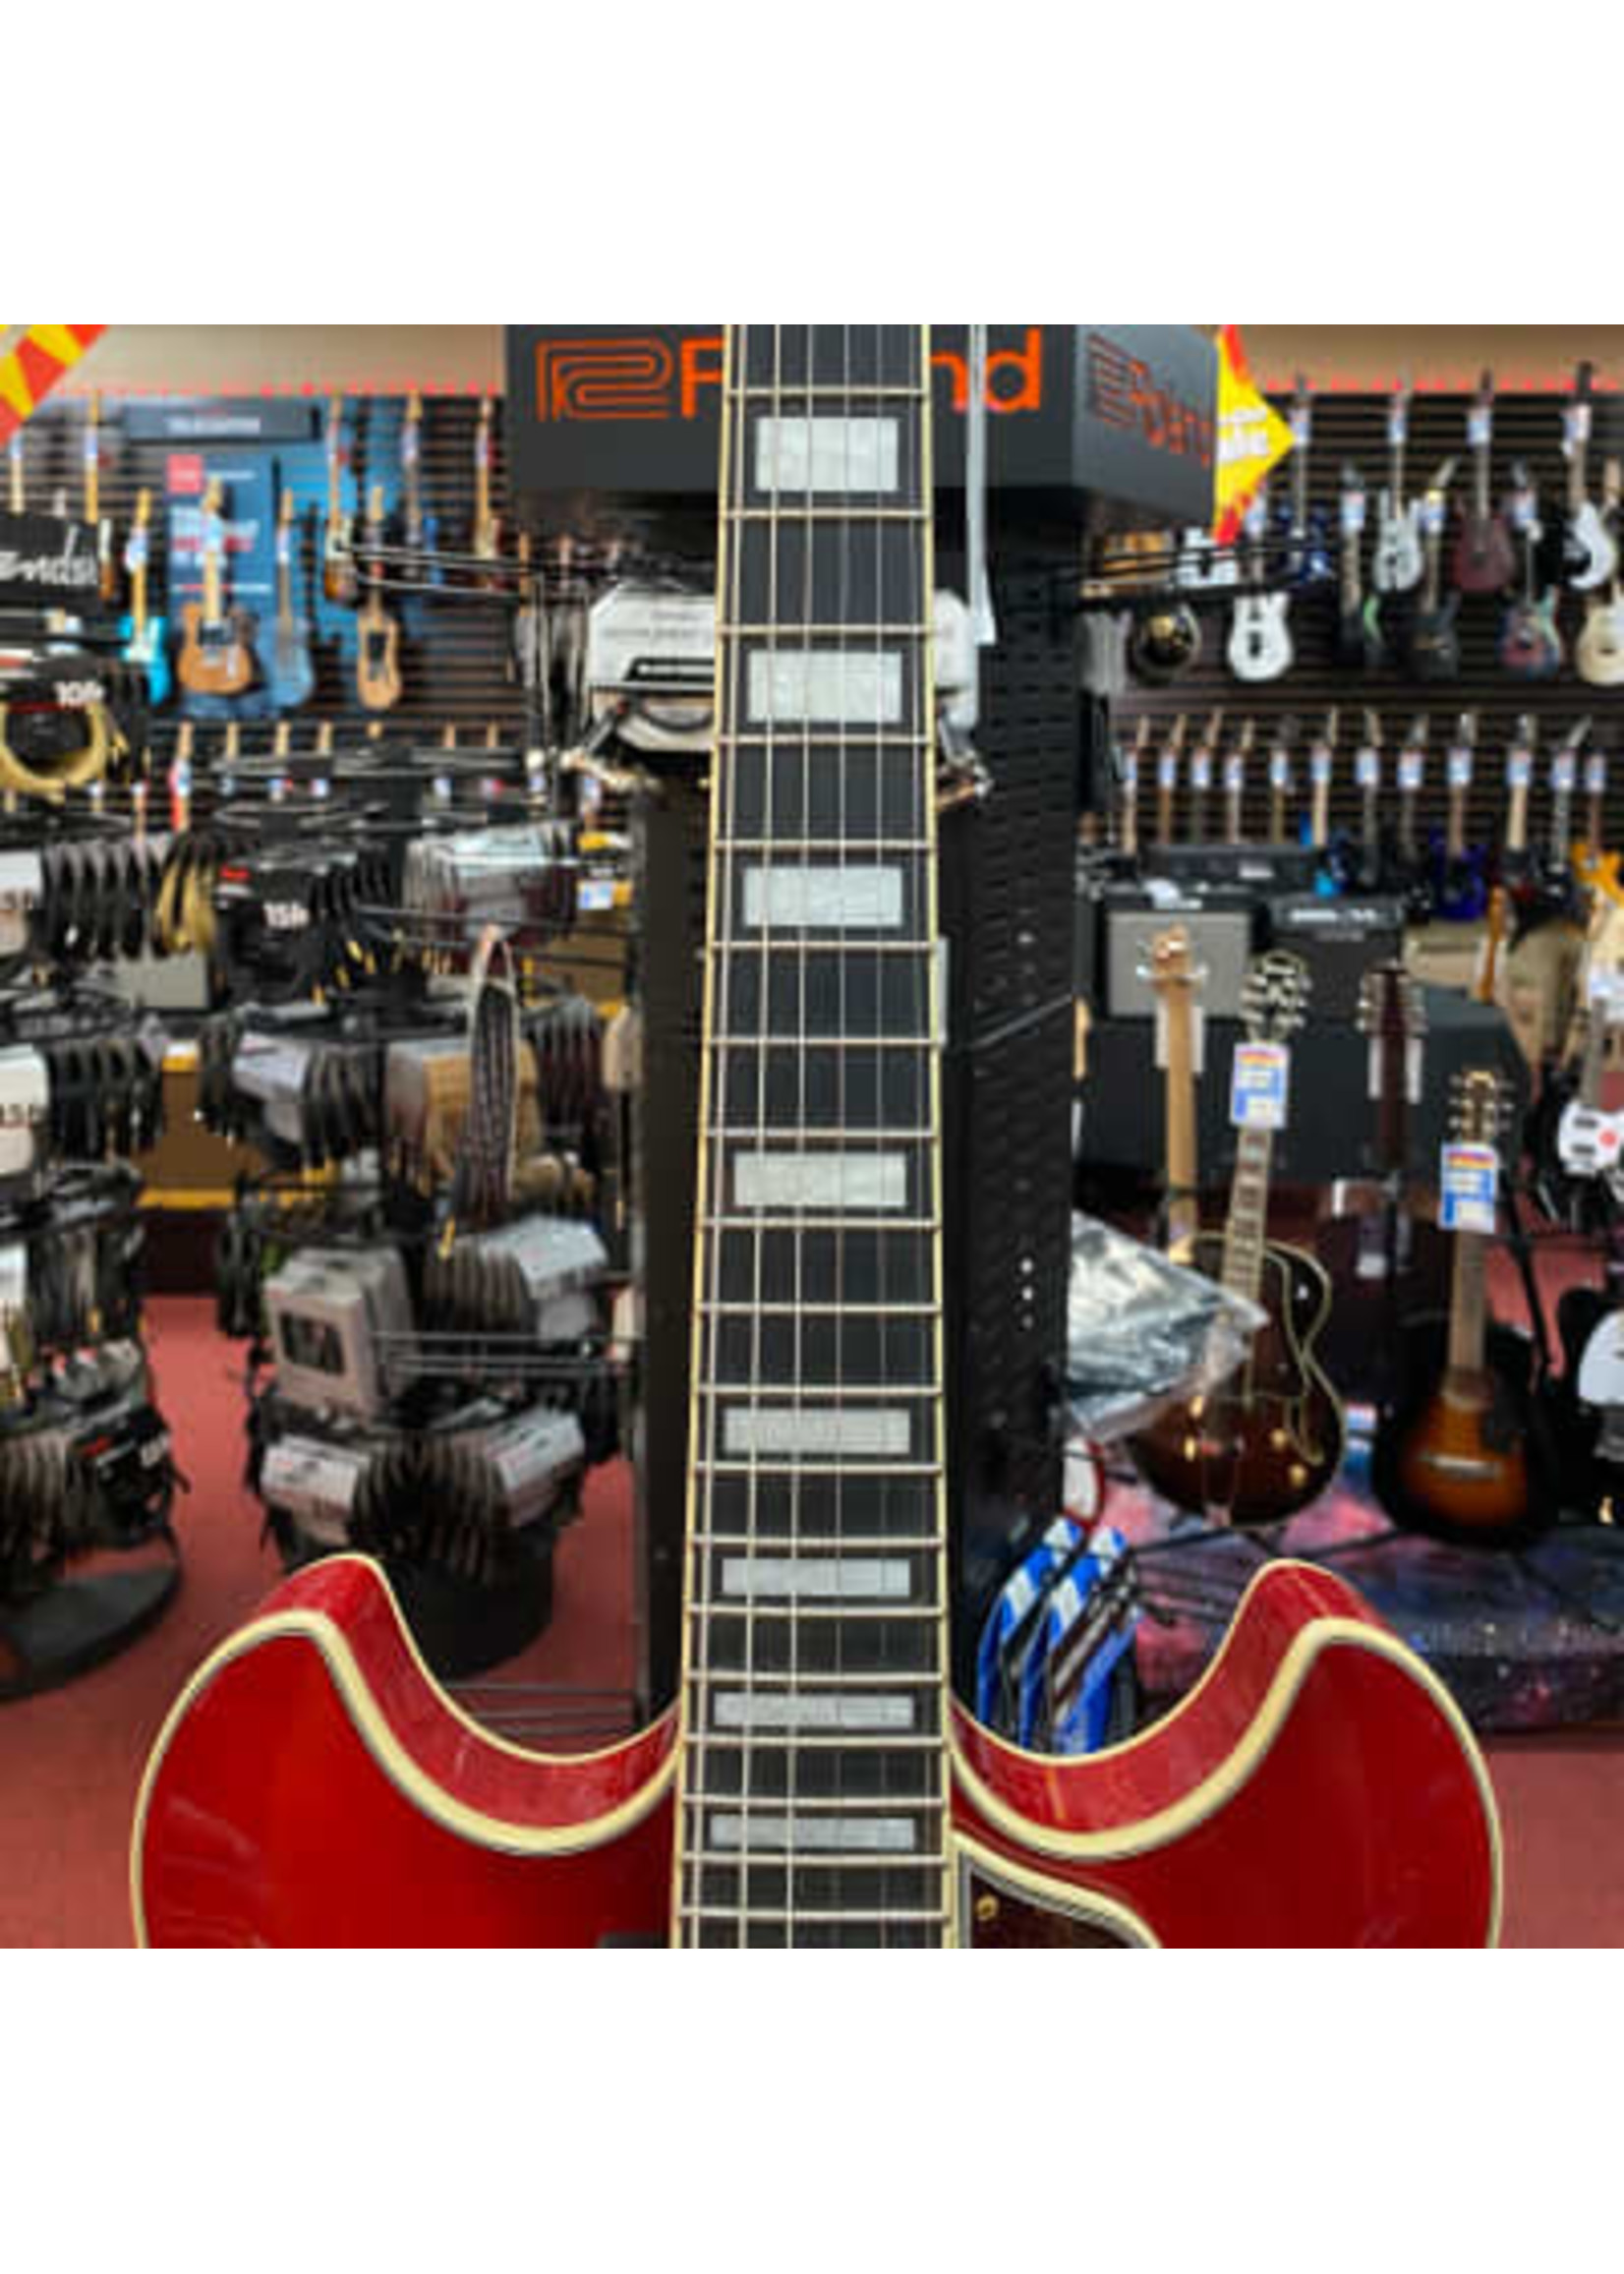 Ibanez Ibanez Artcore Expressionist AS93FM Semi-Hollow Electric Guitar - Transparent Cherry Red